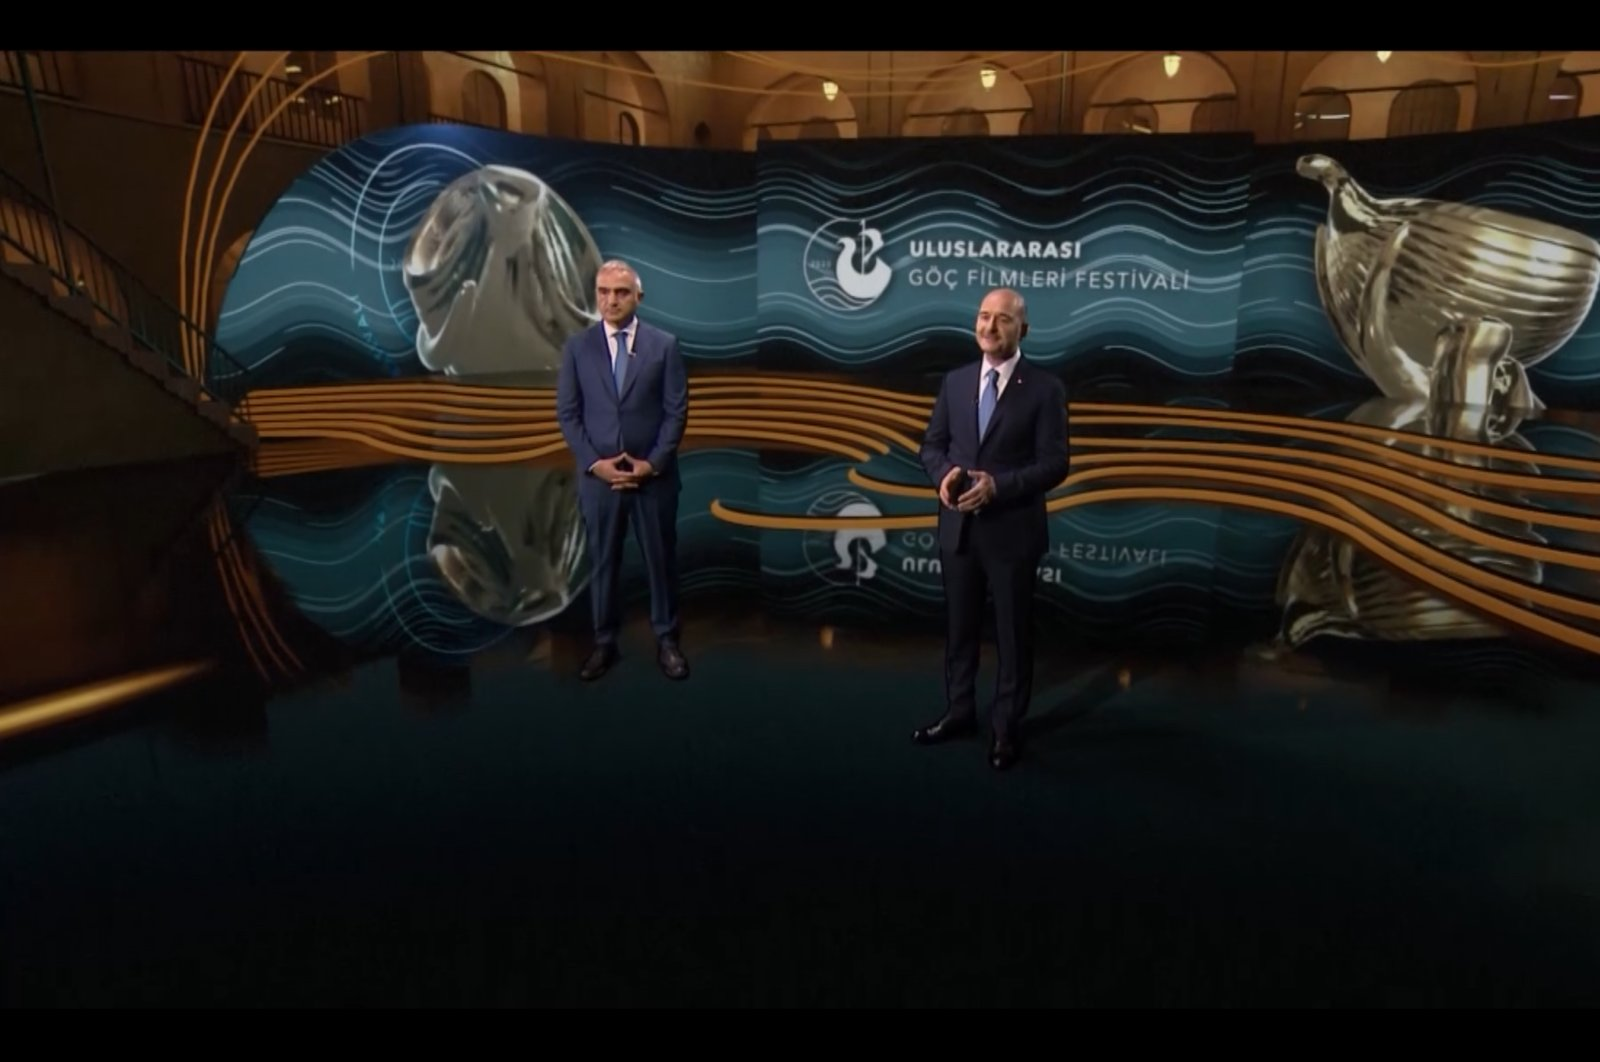 Still shot from the opening ceremony featuring Interior Minister Süleyman Soylu (R) and Culture and Tourism Minister Mehmet Nuri Ersoy.